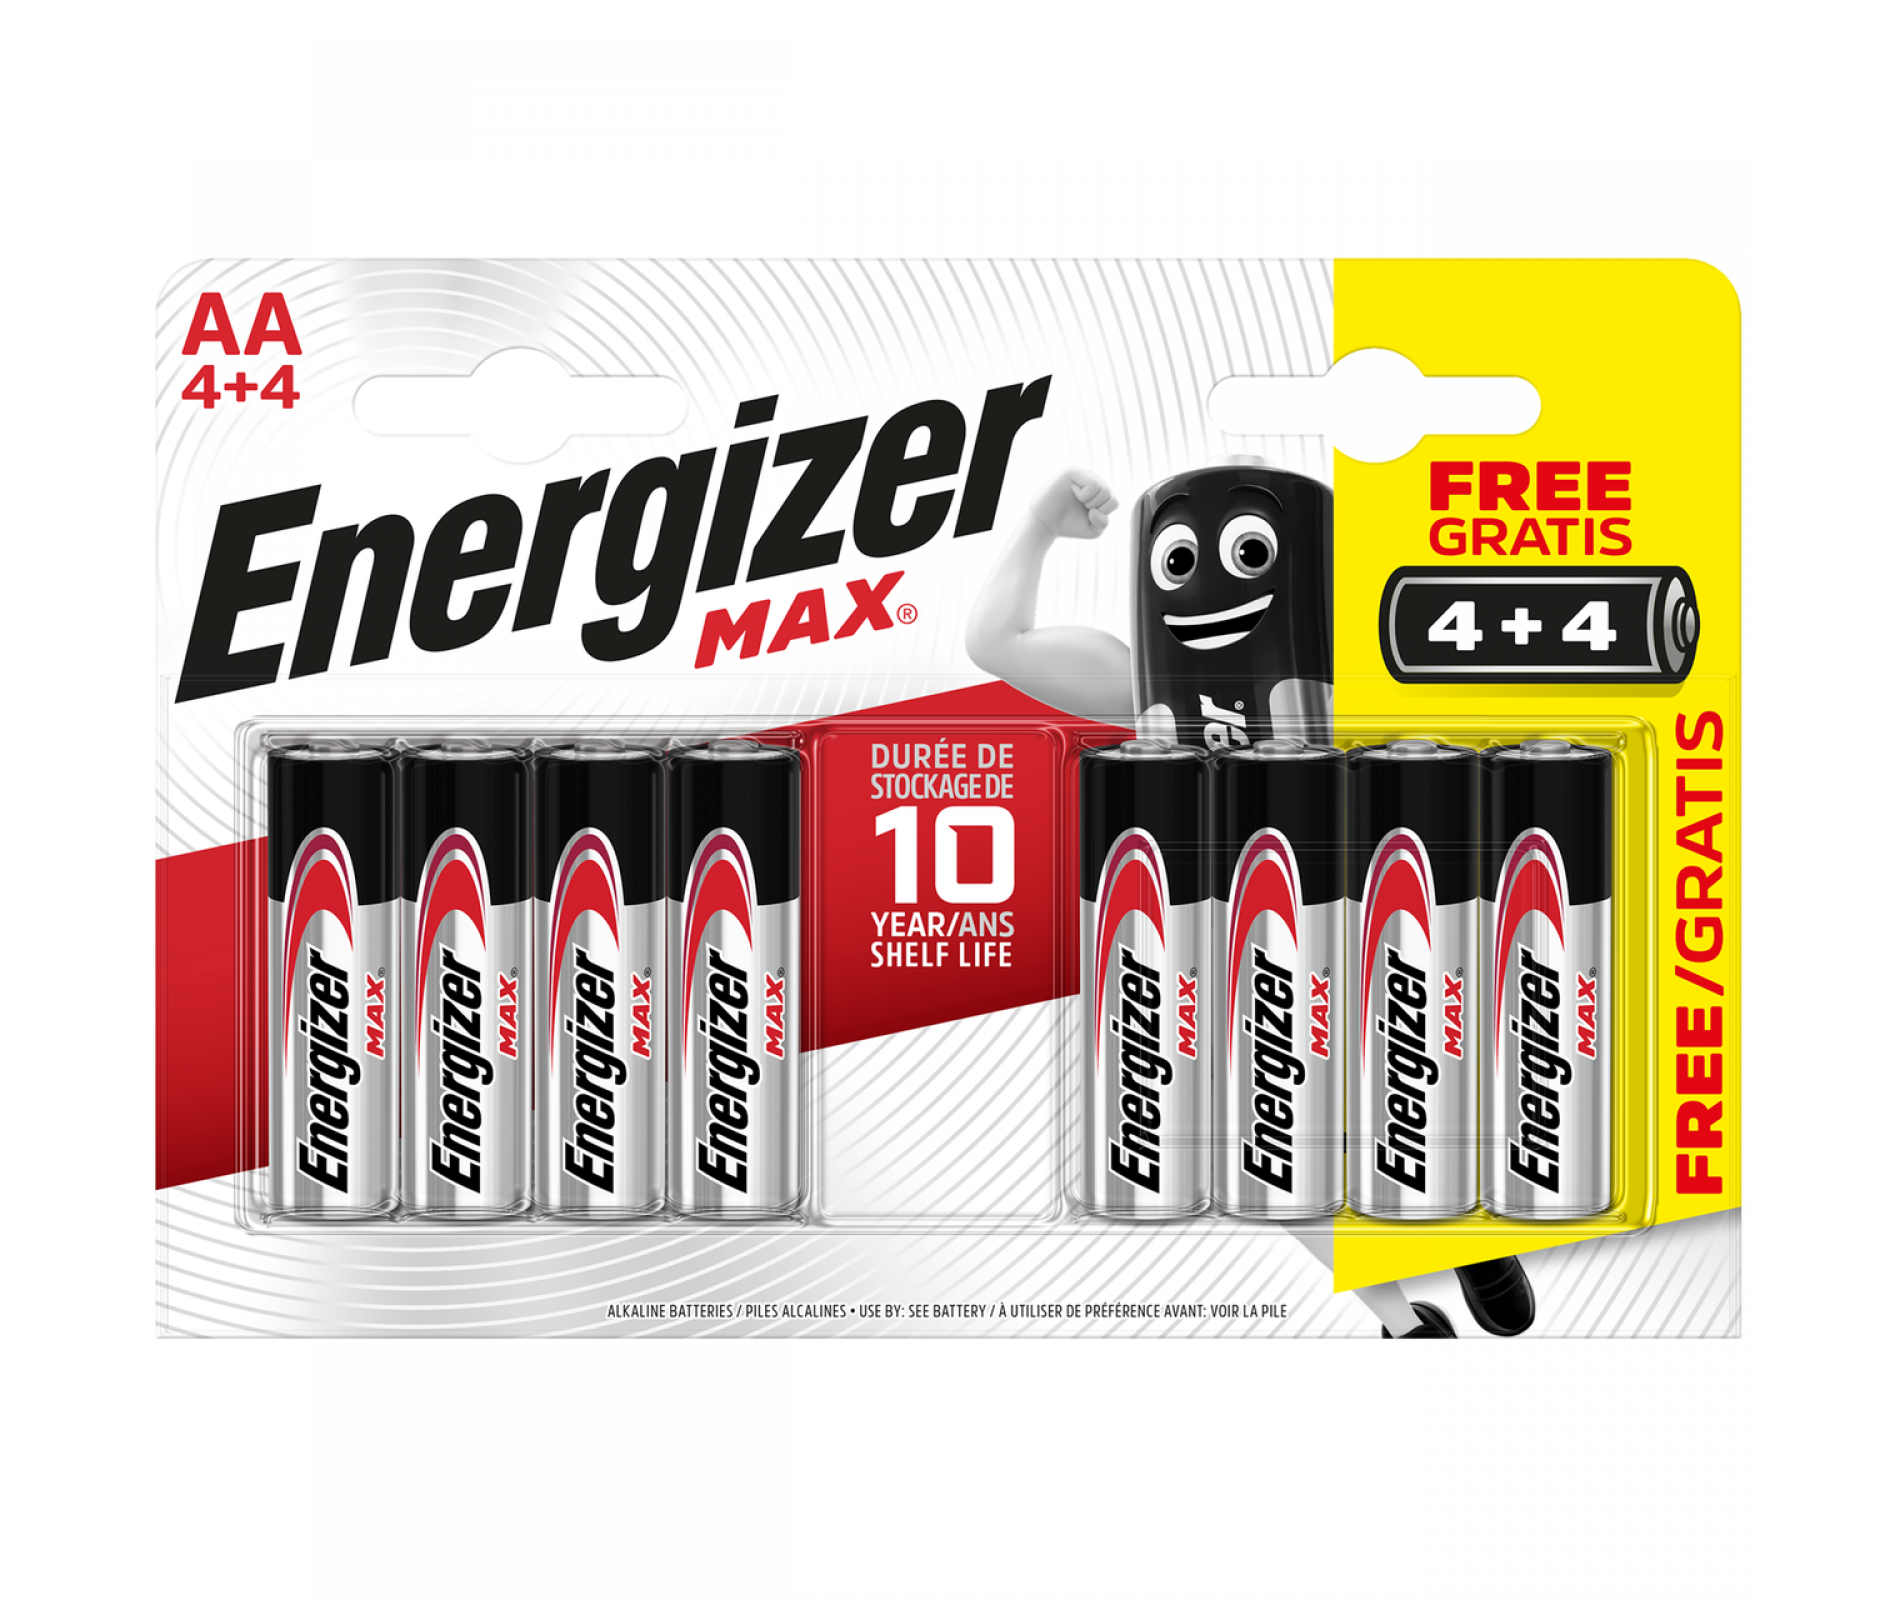 ENERGIZER MAX AA 4+4